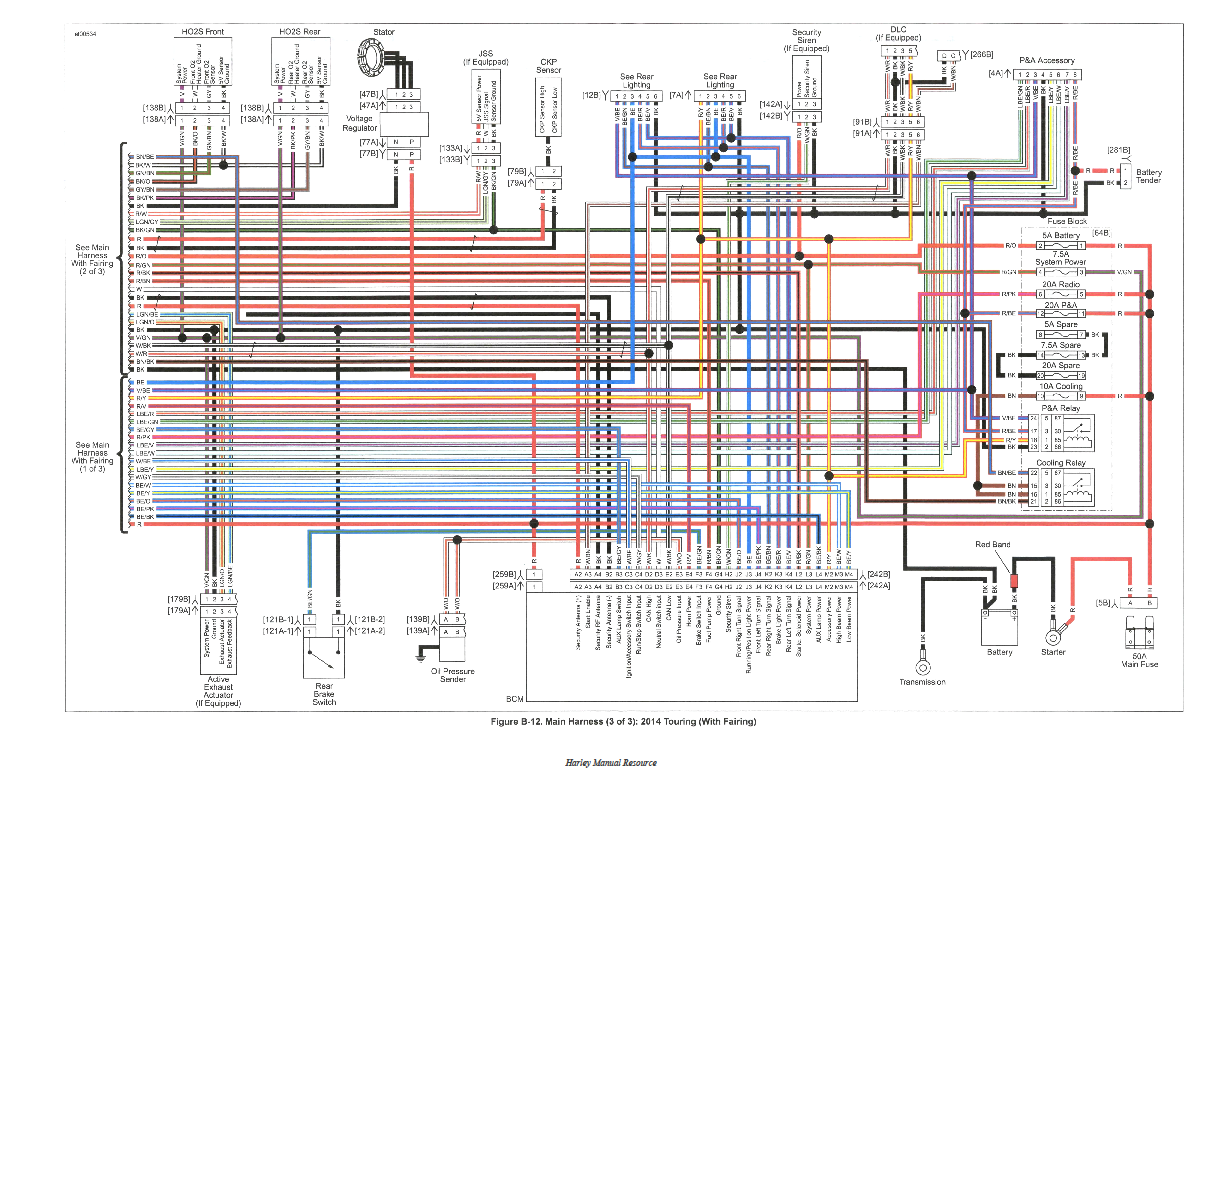 80 14_613_7162541d06ee90f59b30f0f216628817c66cf97f need 2014 or later street glide taillight wiring diagram harley 2014 harley touring wiring diagrams at creativeand.co